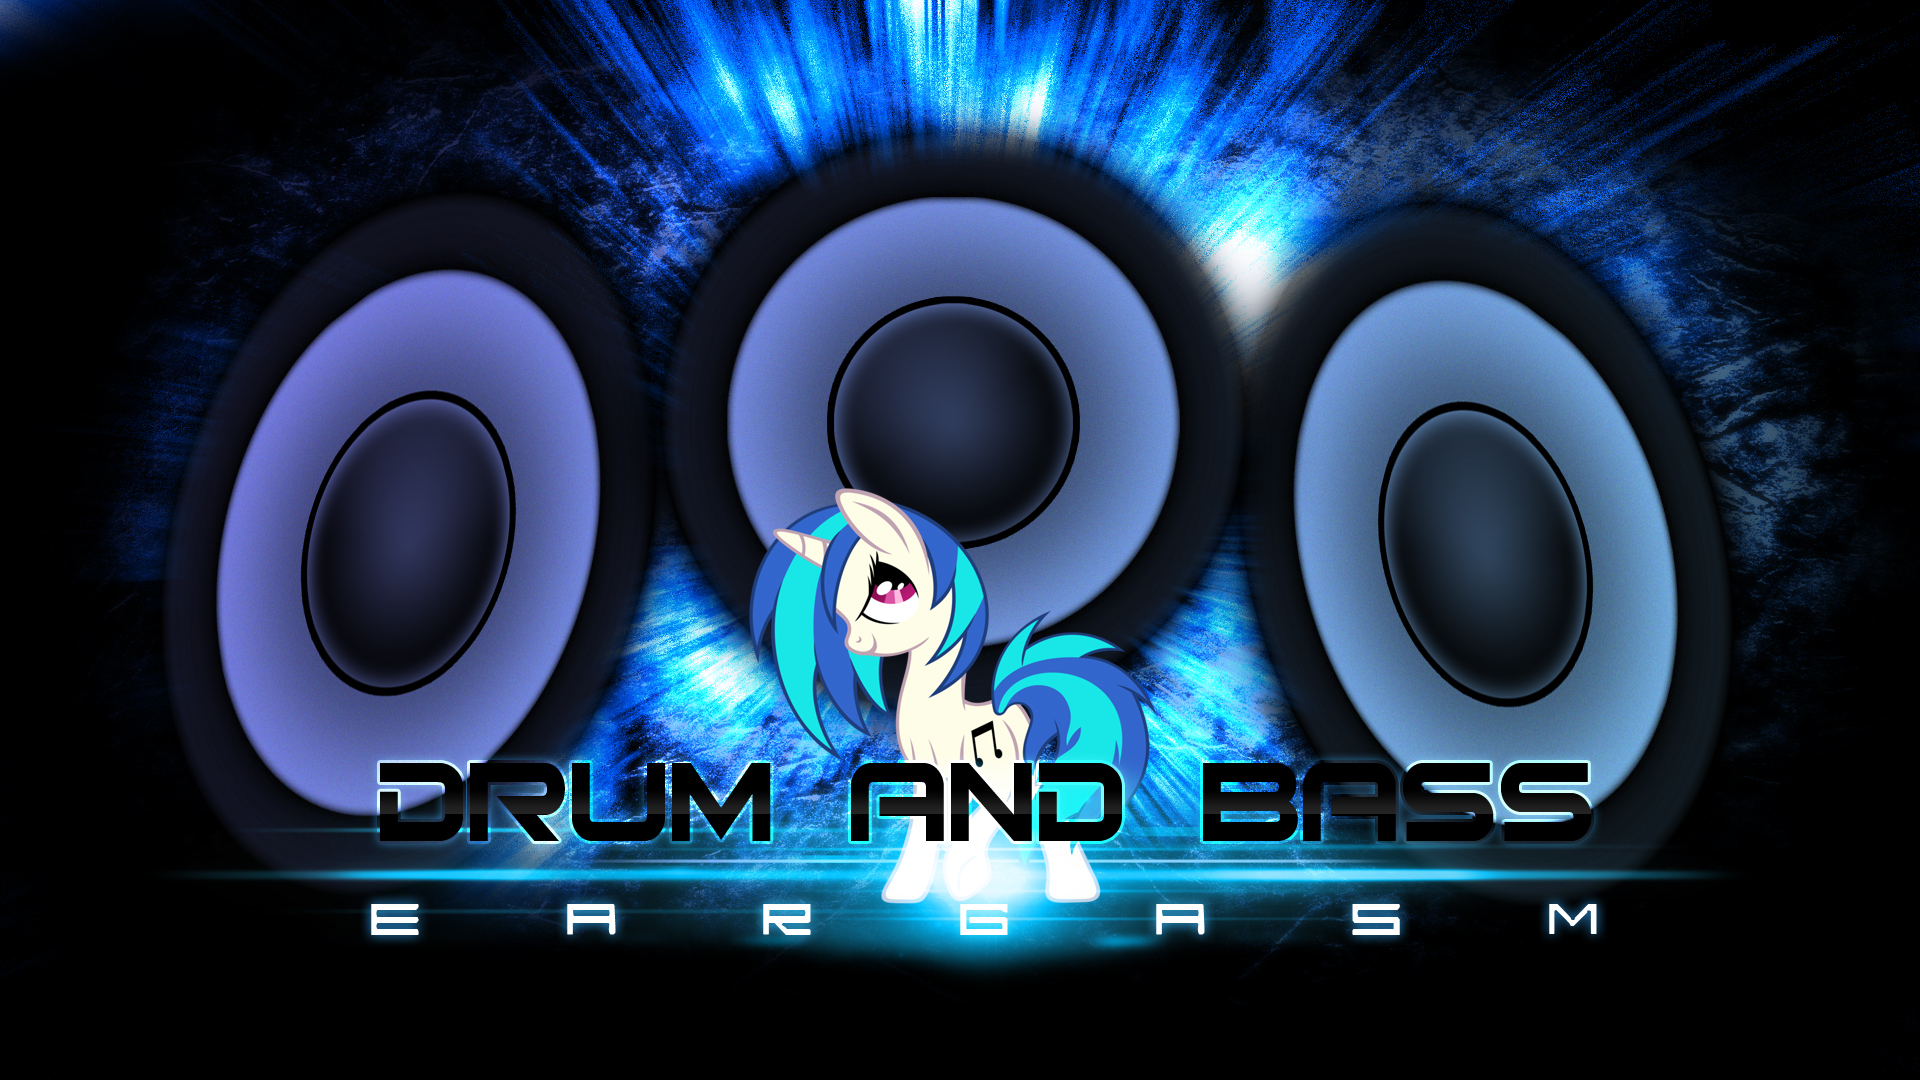 Vinyl Scratch Bass Wallpaper by IIThunderboltII and Tzolkine